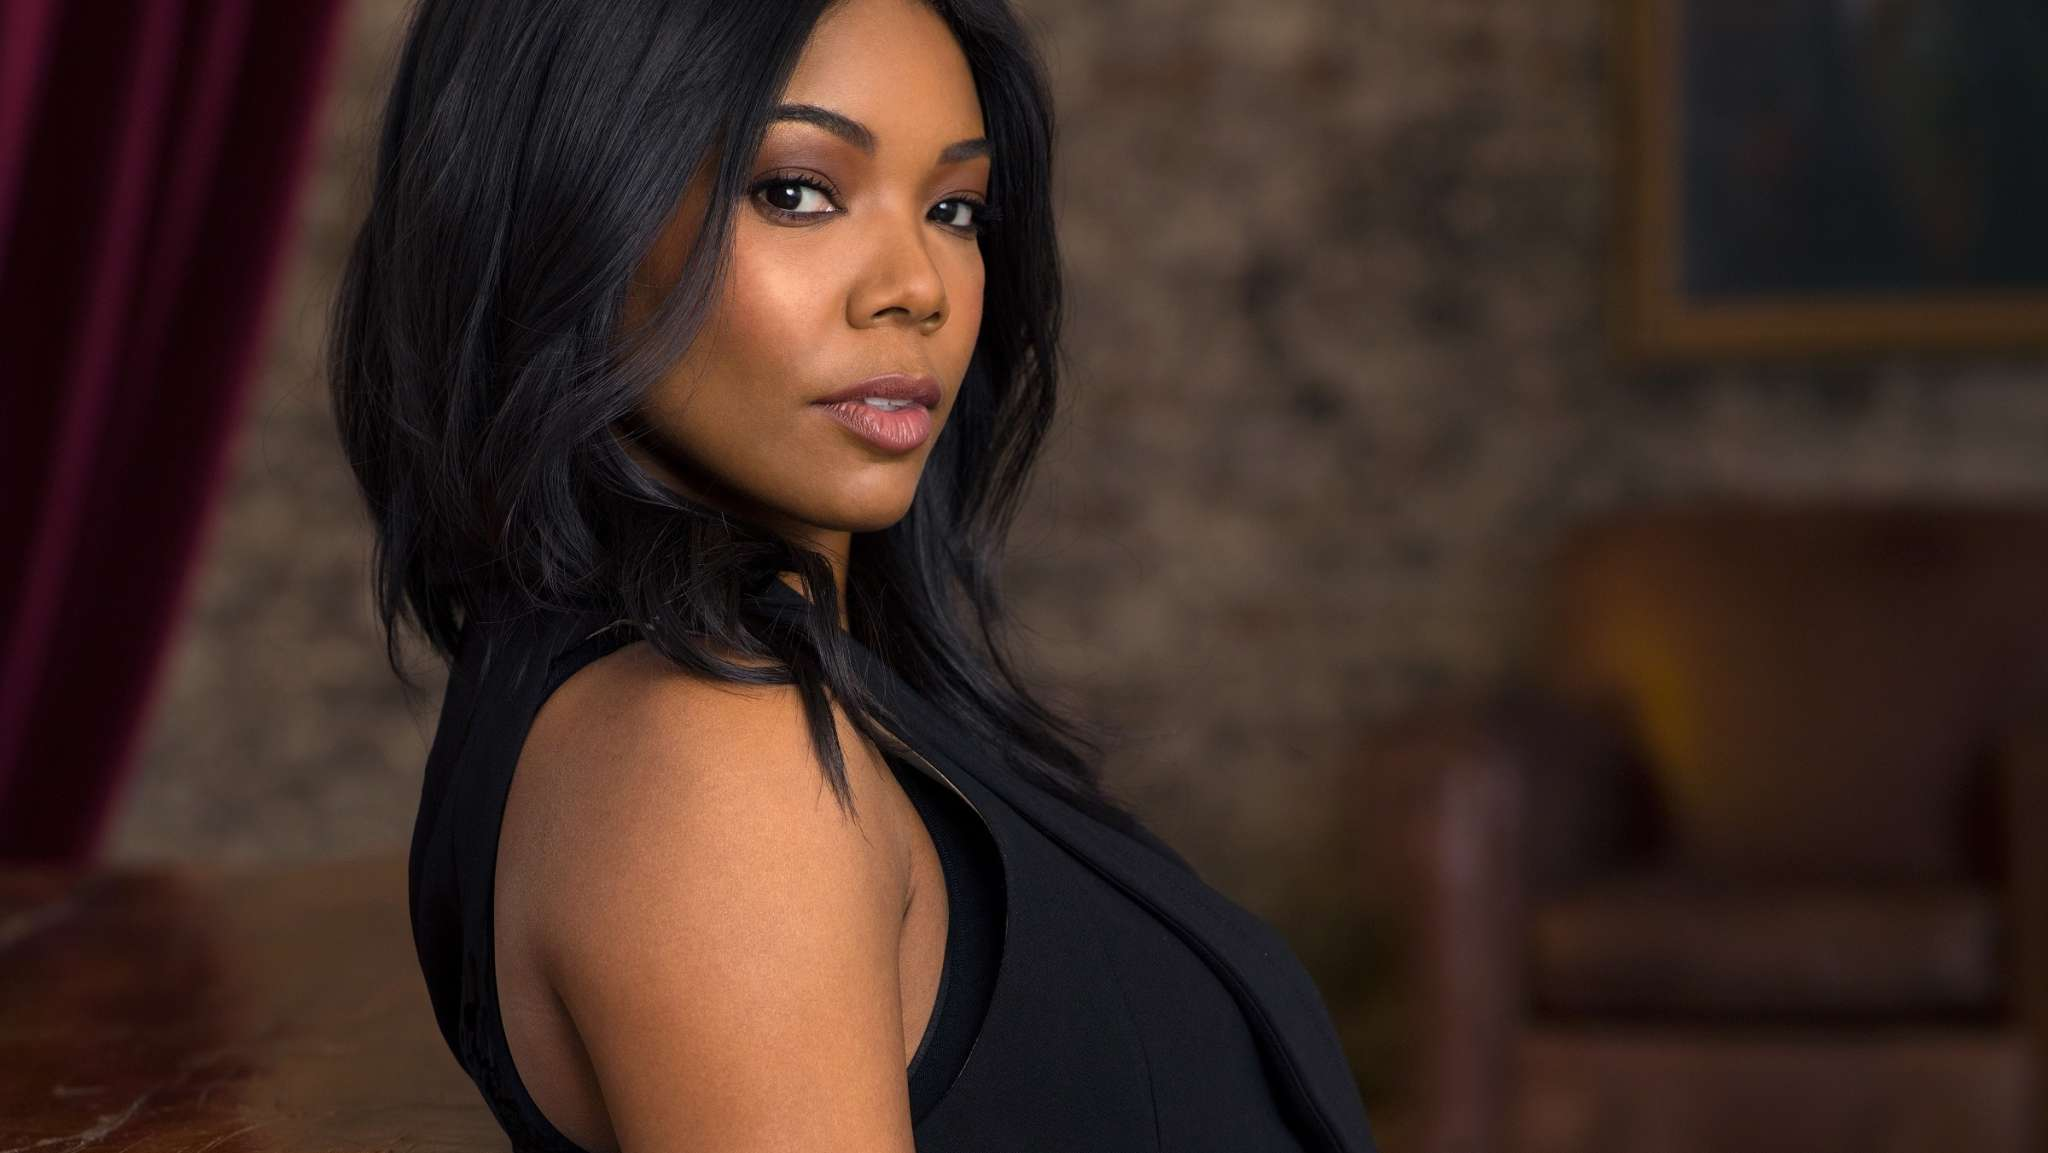 Gabrielle Union's Video Featuring Kaavia James Has Fans Excited – See It Here